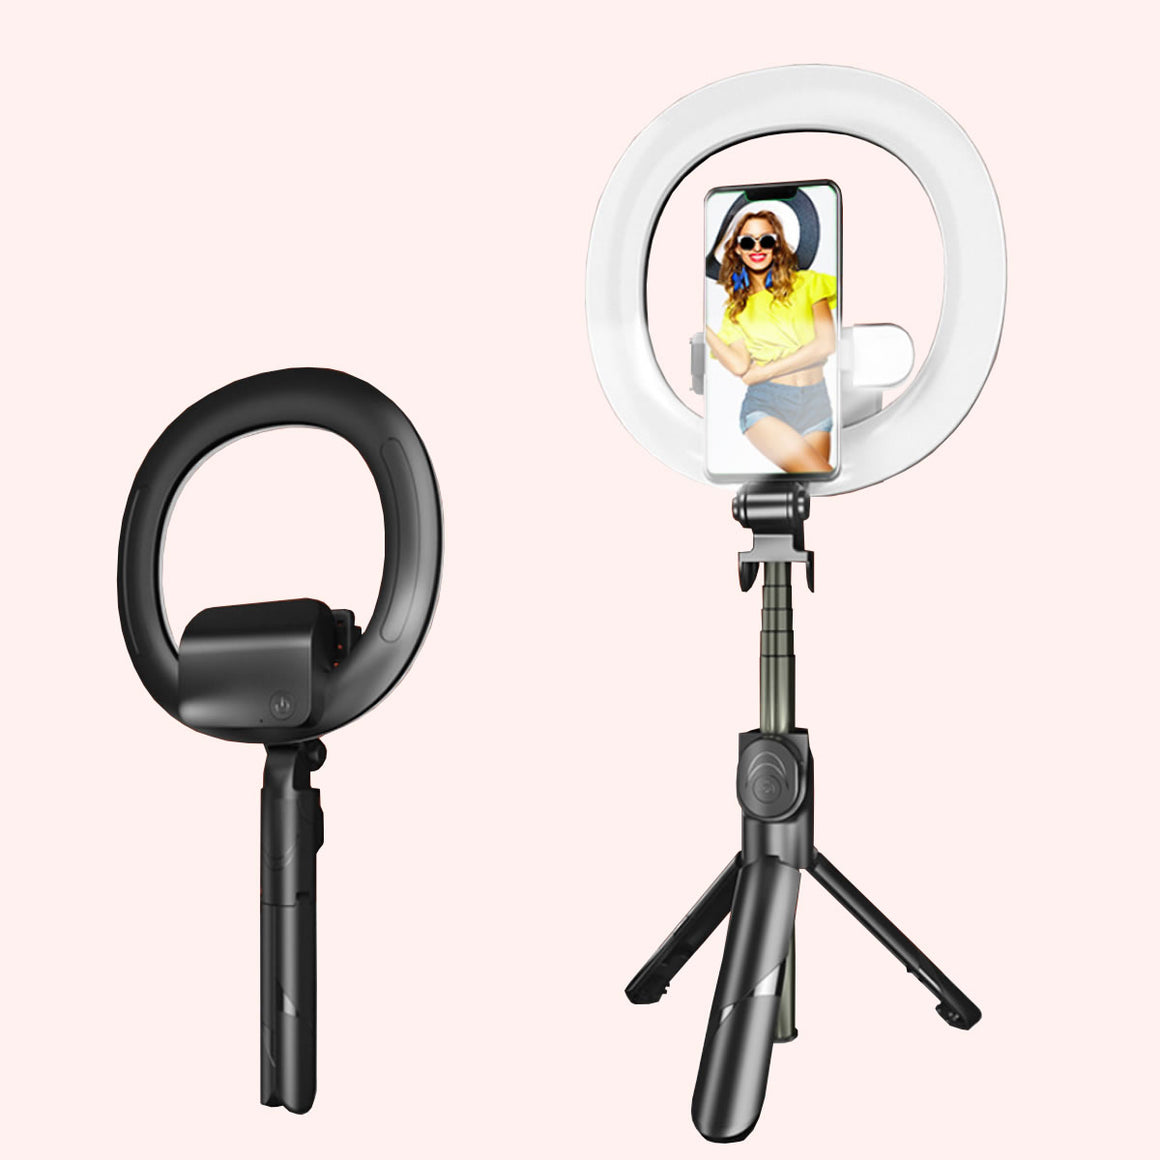 Self Video Portrait Halo Light Stand With Dual LED Light And Bluetooth Remote - Black